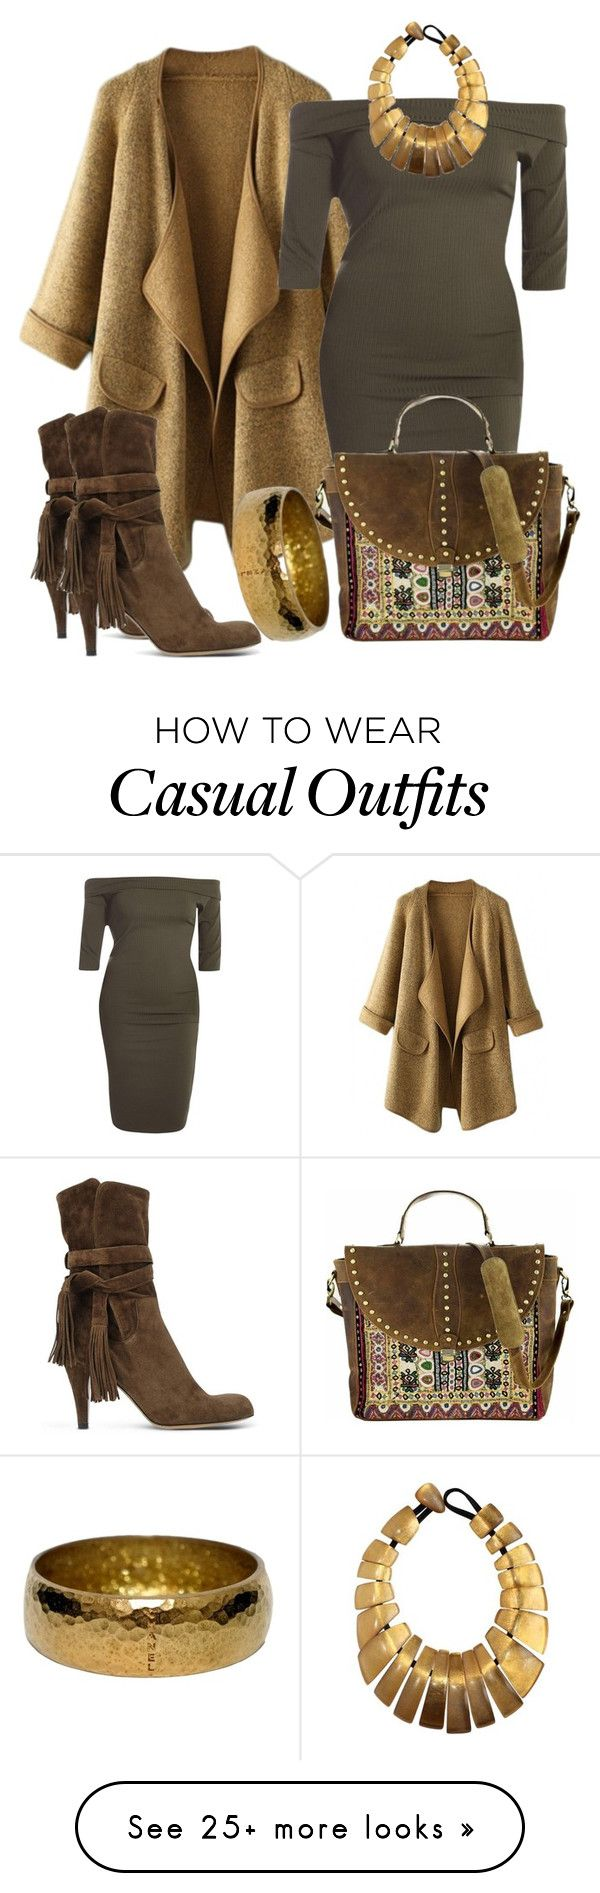 """casual"" by alice-fortuna on Polyvore featuring Vintage Addiction, Chloé, Chanel, Monies, women's clothing, women's fashion, women, female, woman and misses"